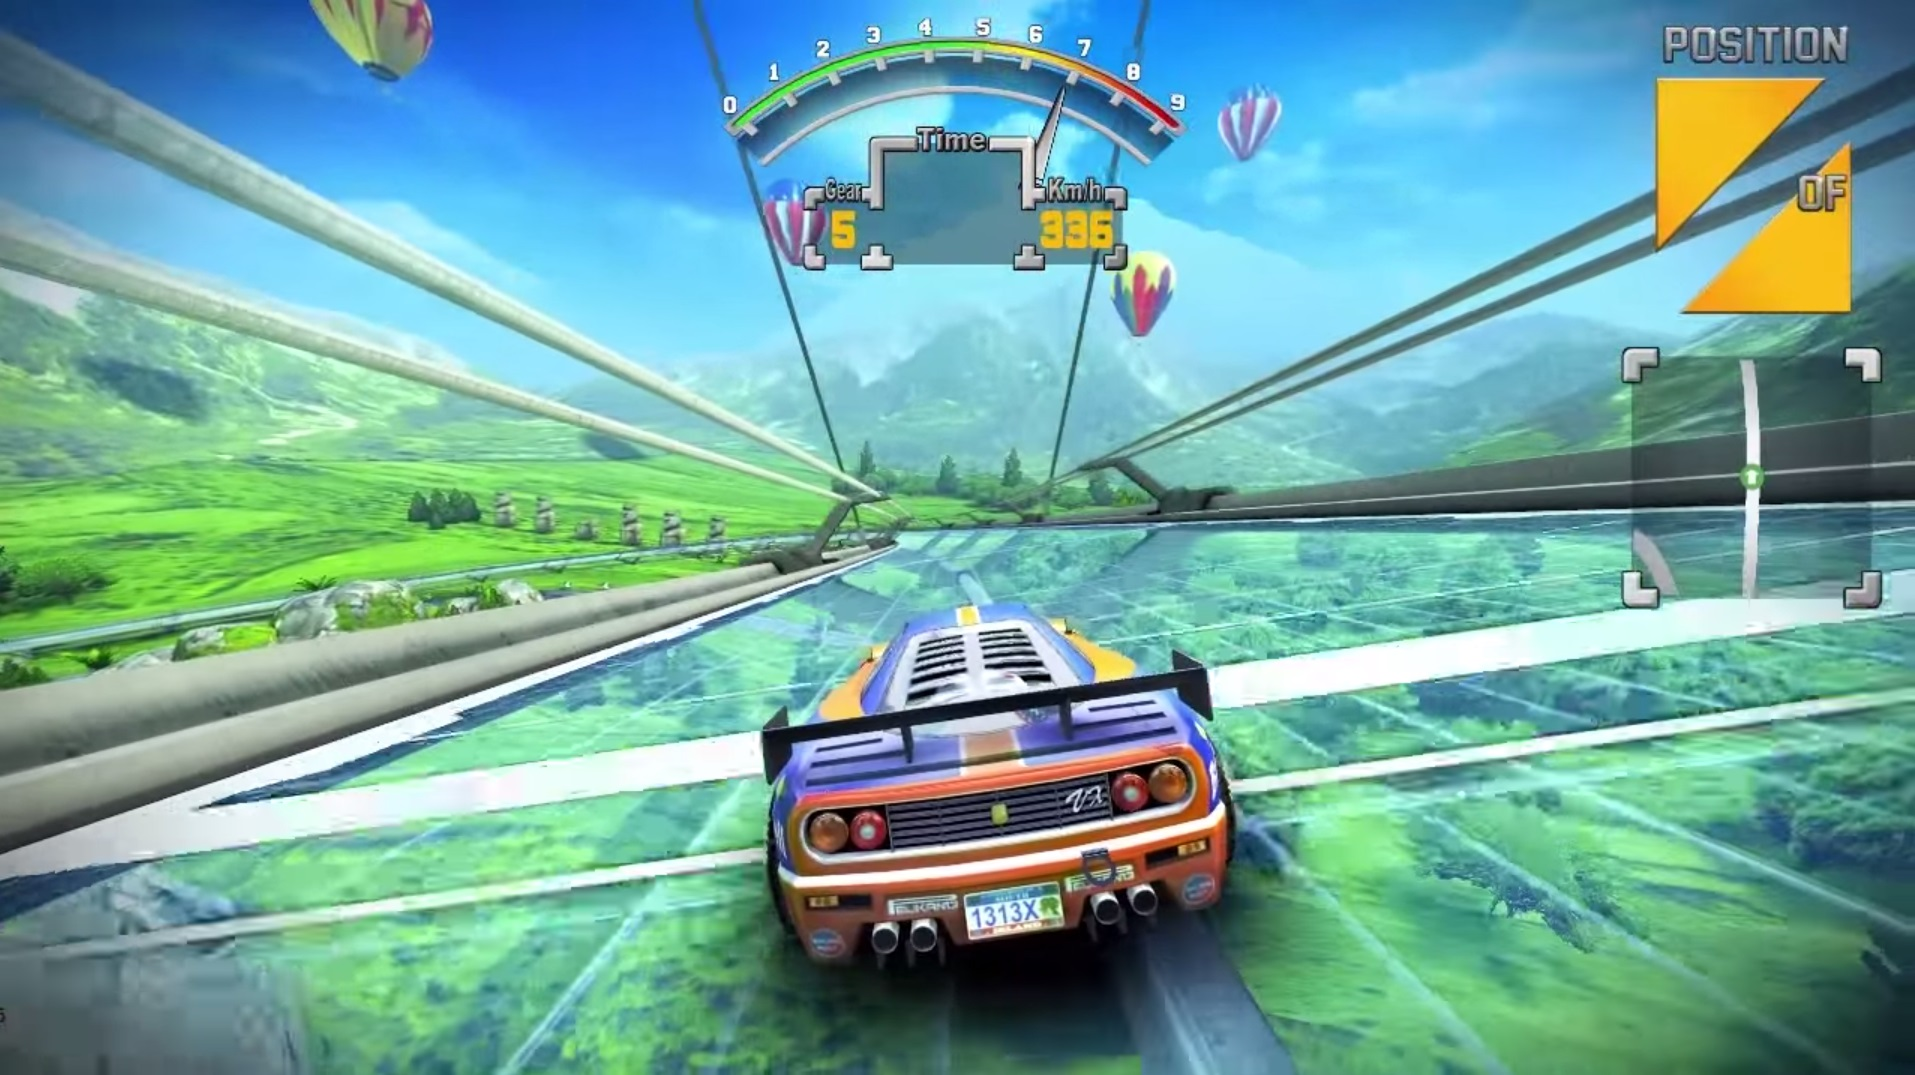 The 90's Arcade Racer Wii U screenshot